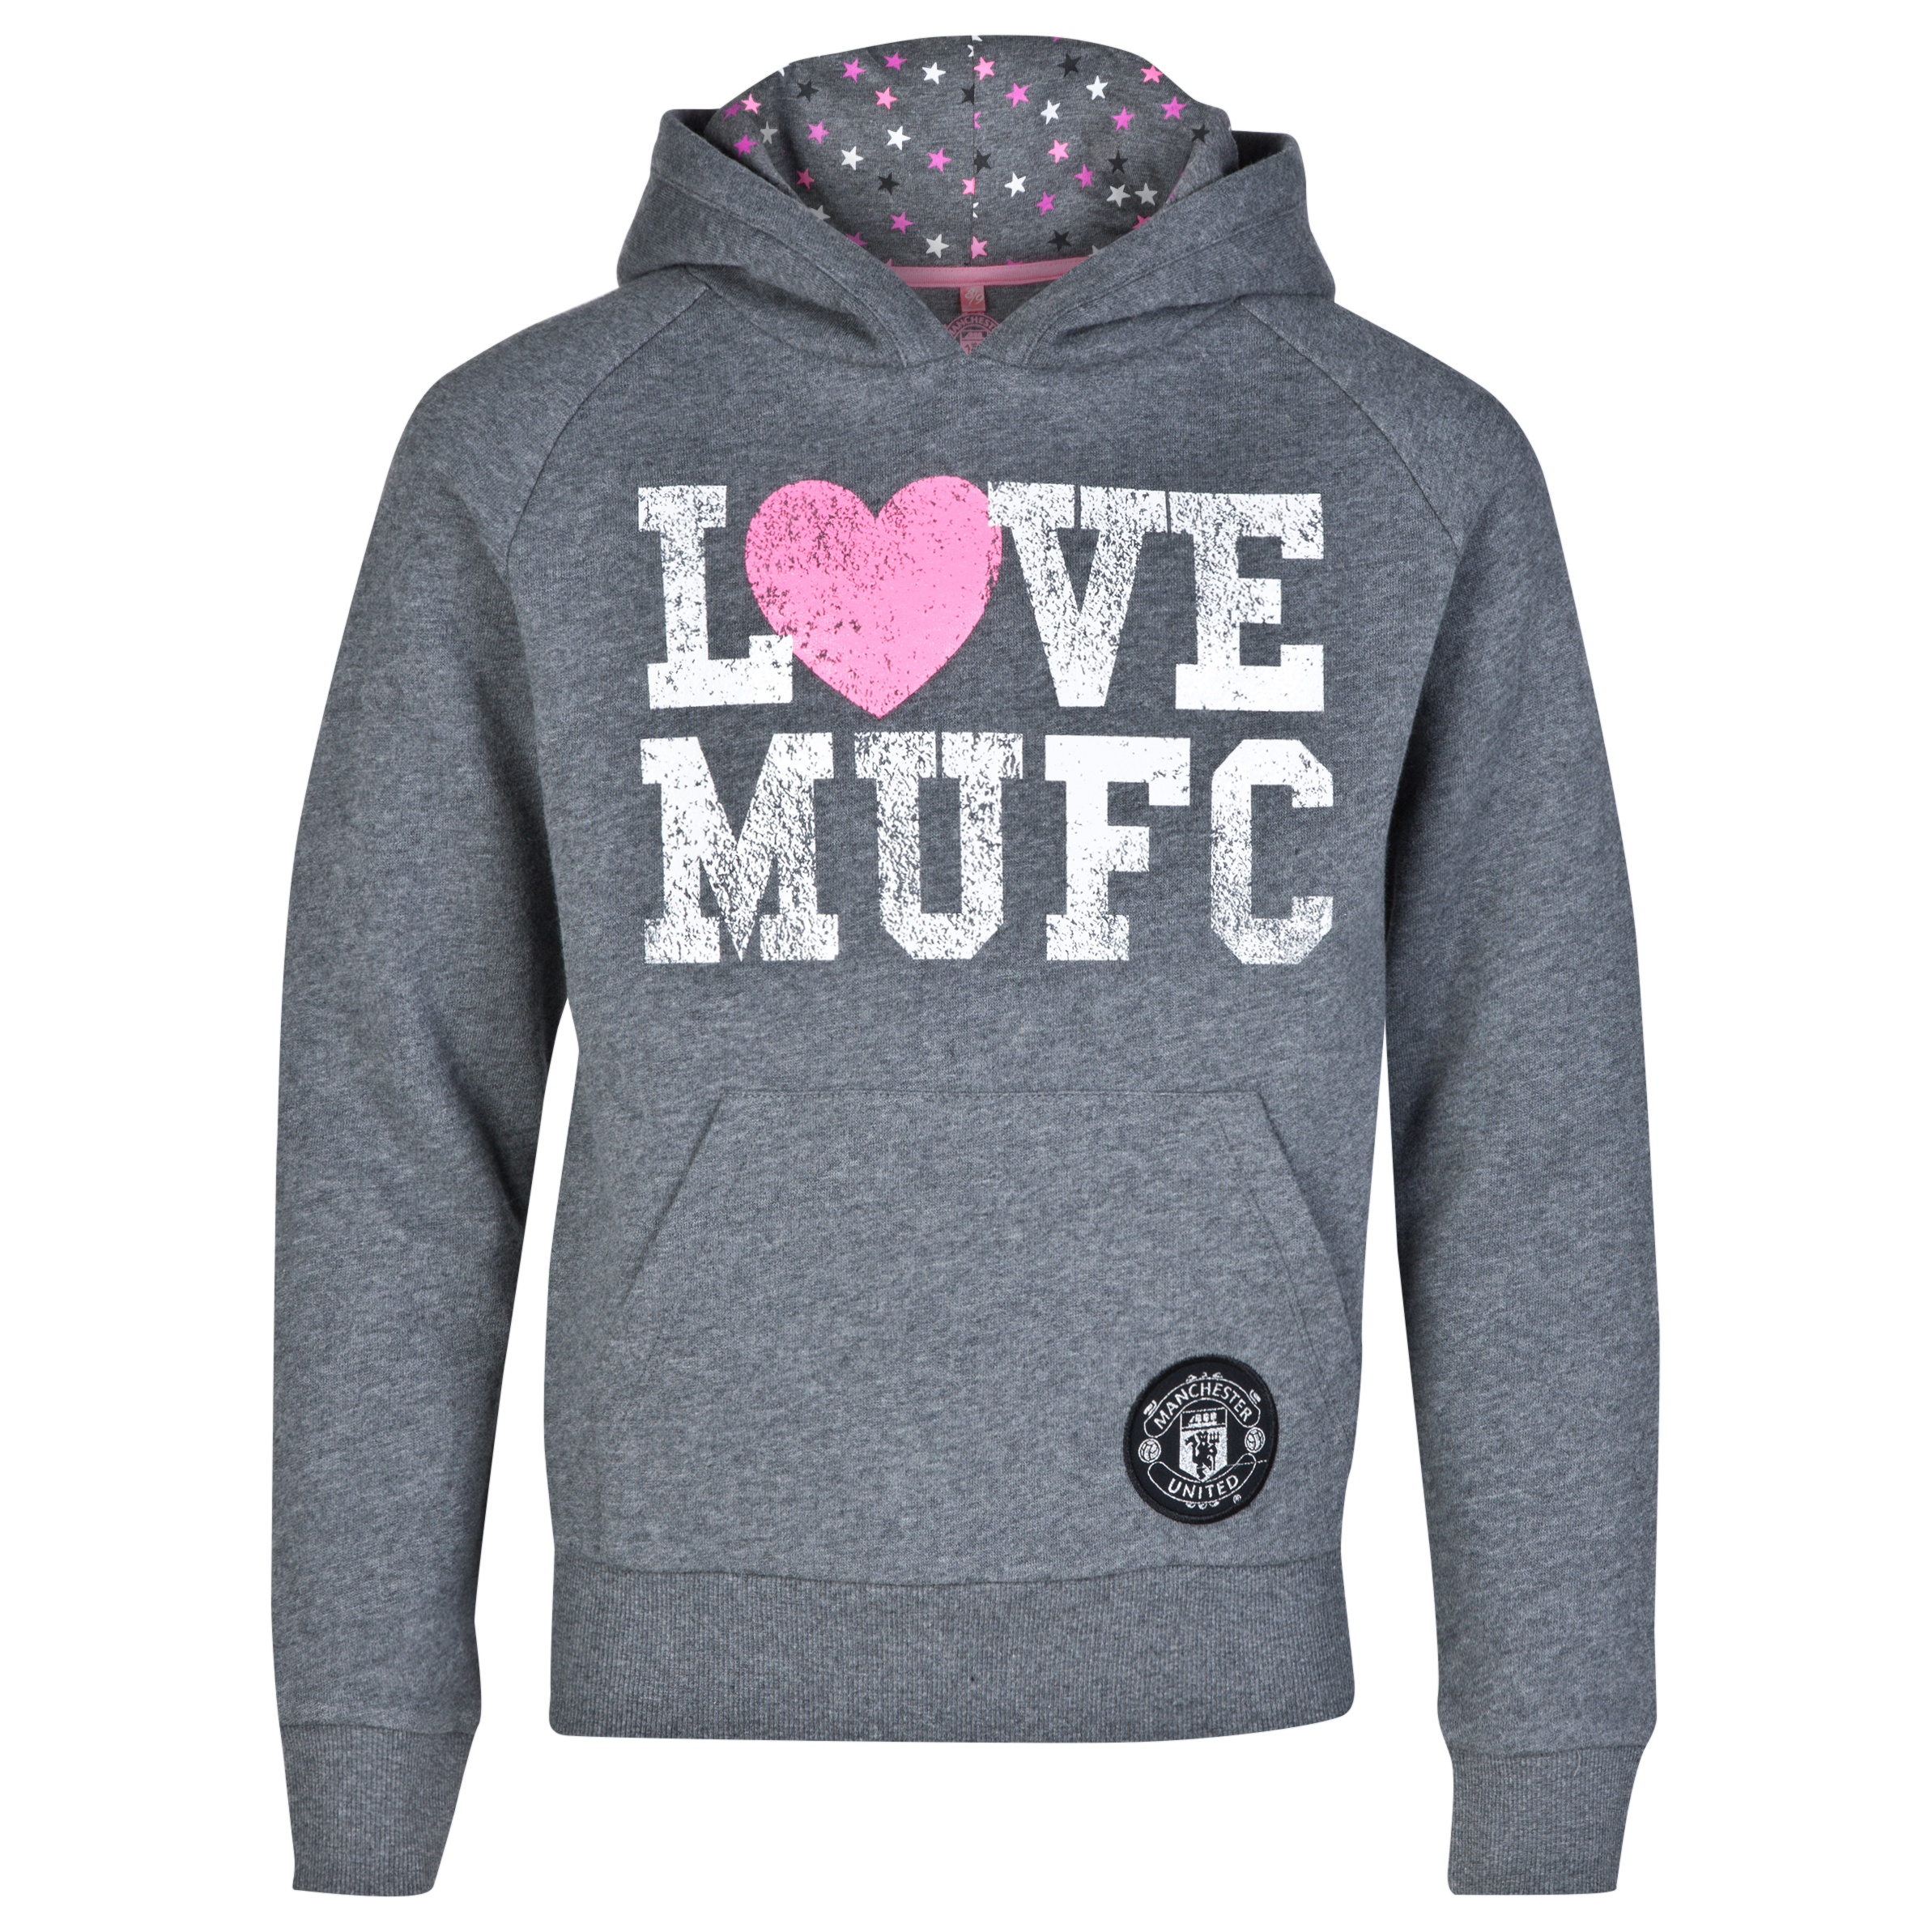 Manchester United Star Print Fleece Hoodie - Vintage Marl - Girls